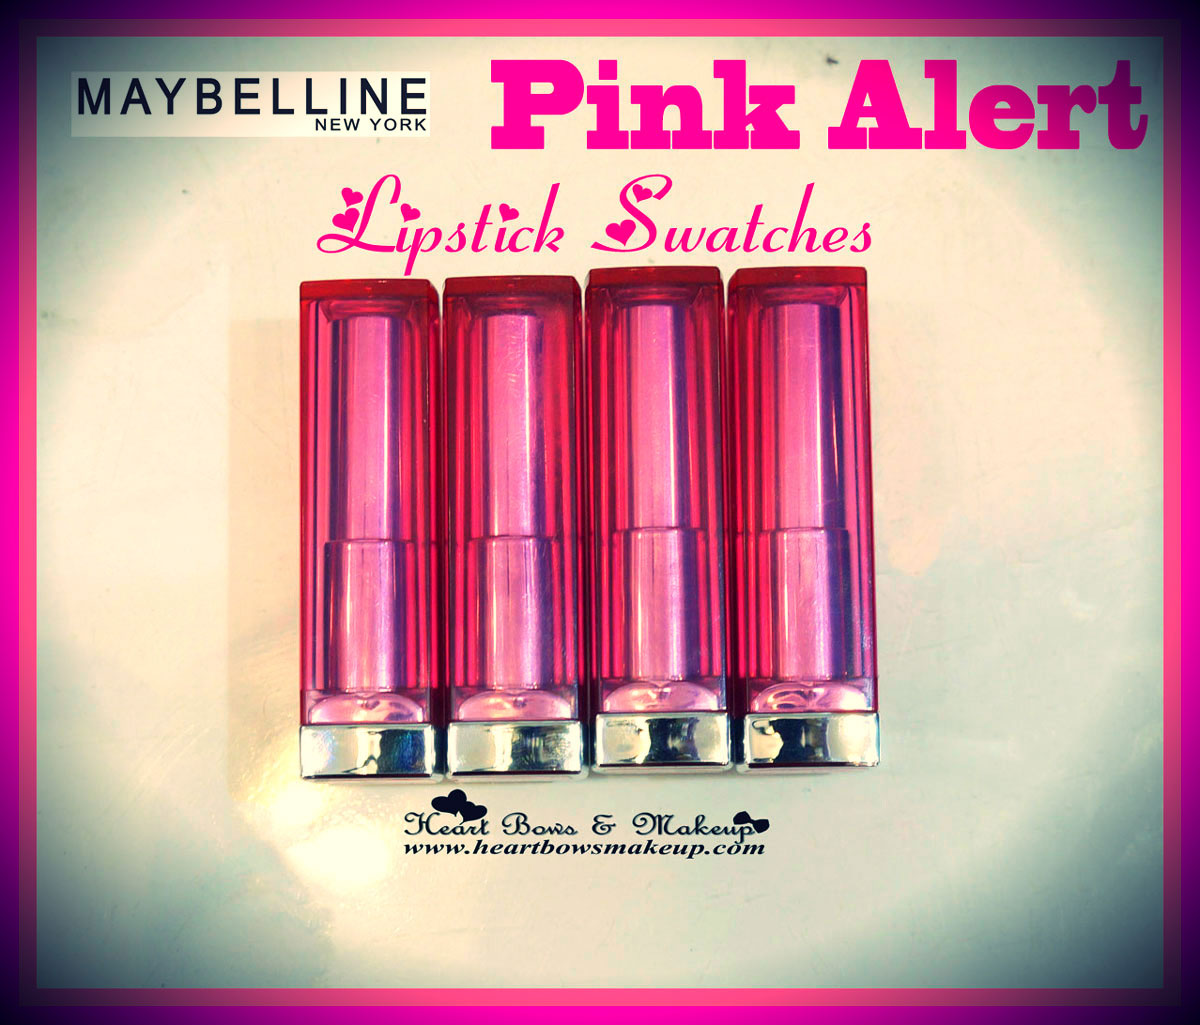 Best Makeup Launches of 2014: Maybelline Pink Alert POW Lipsticks